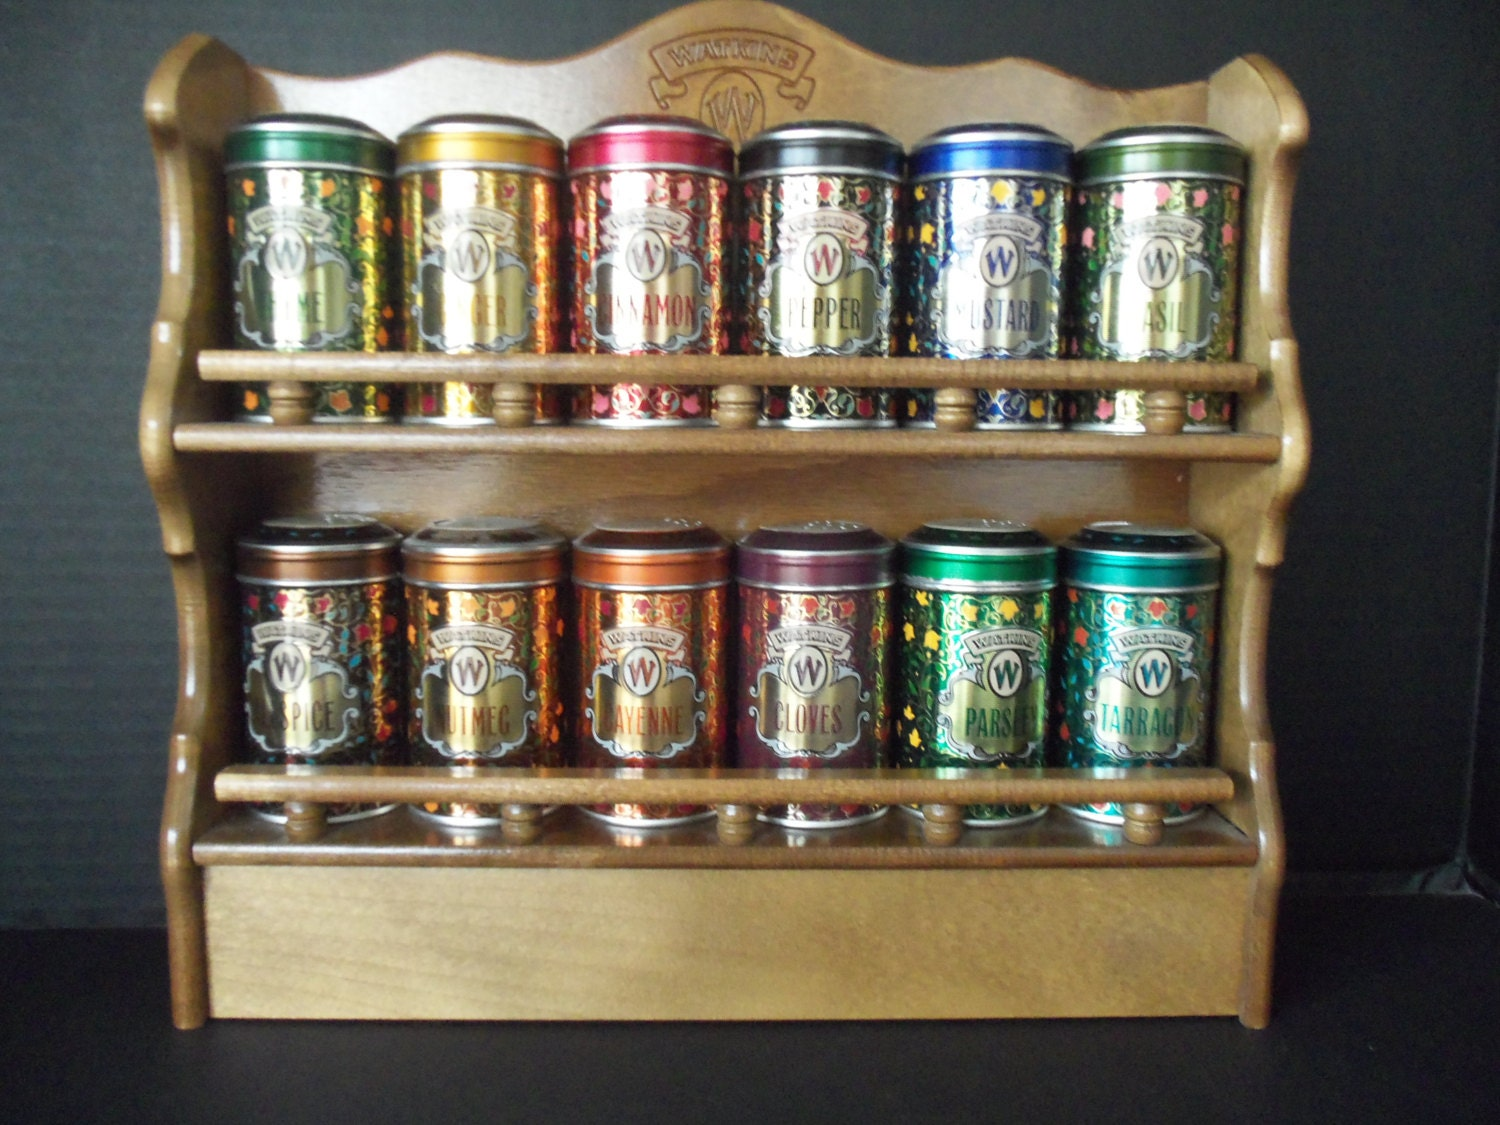 Spice Rack Wooden Watkins Spice Tins Set Of 12 Tins Limited